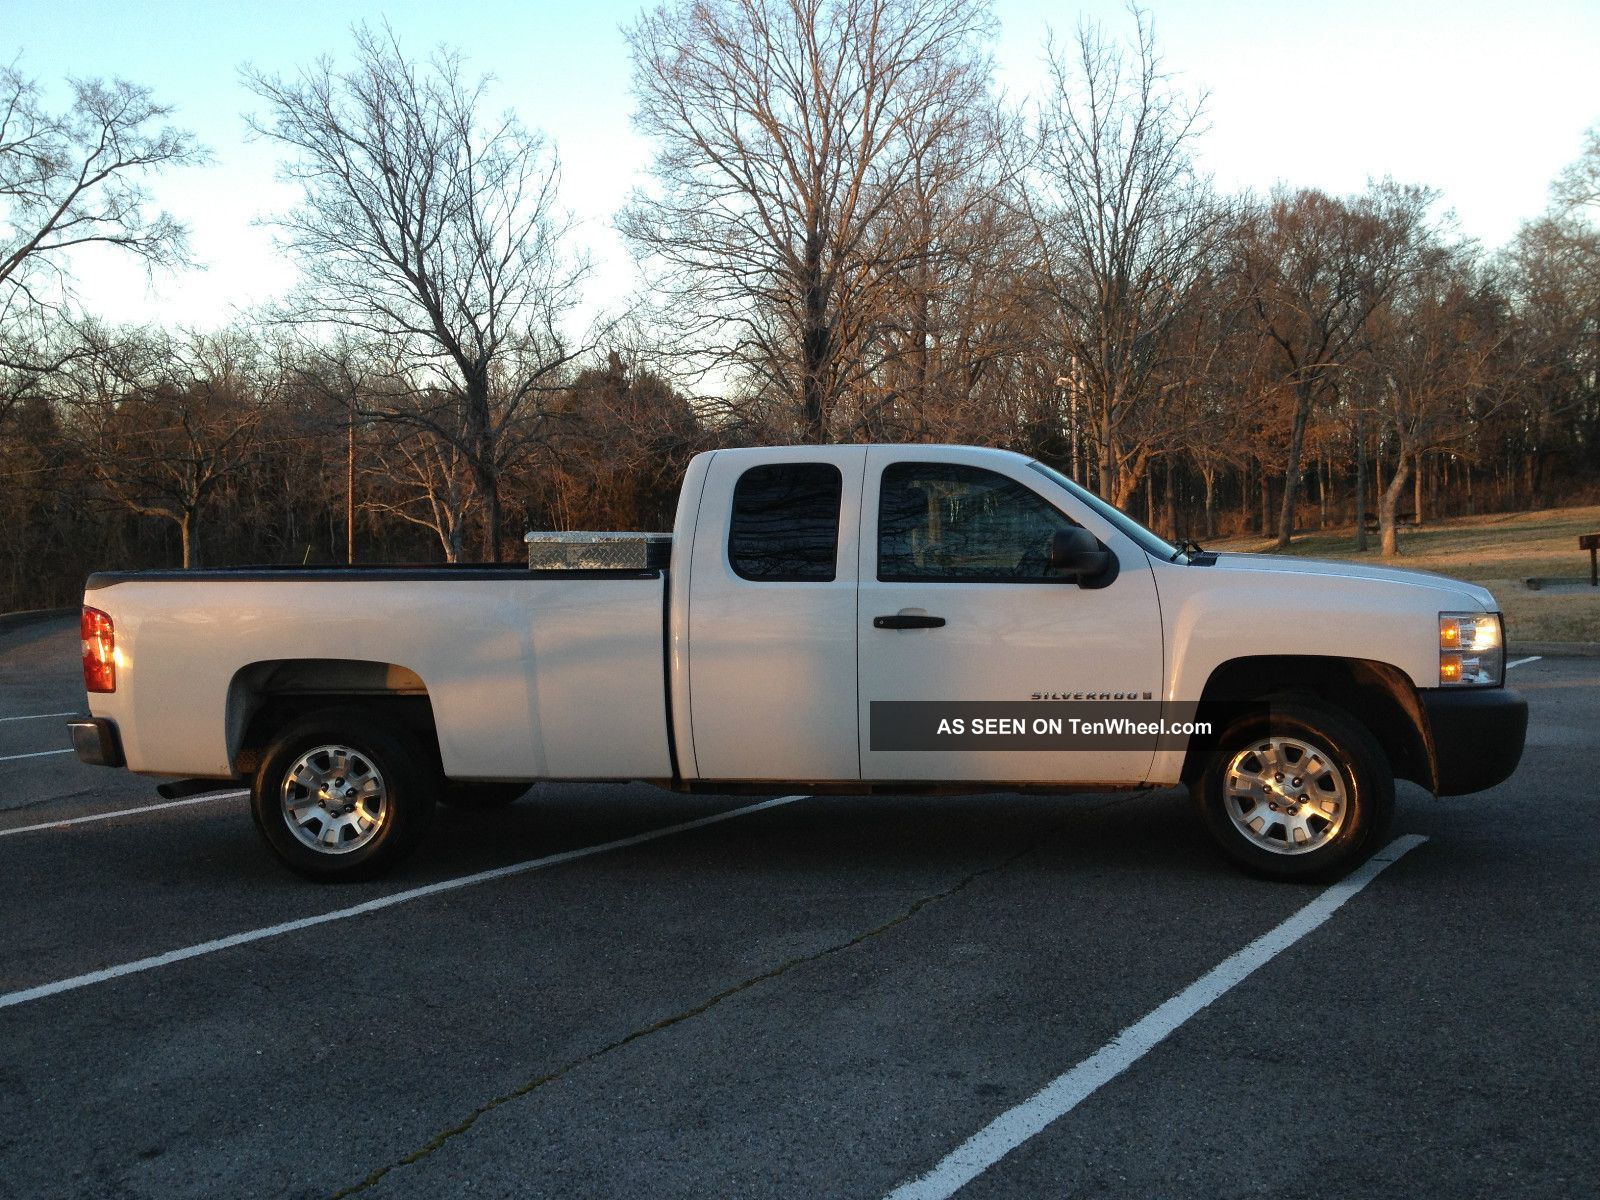 2008 chevrolet silverado 1500 extended cab pickup 4 door 5 3l v8. Black Bedroom Furniture Sets. Home Design Ideas